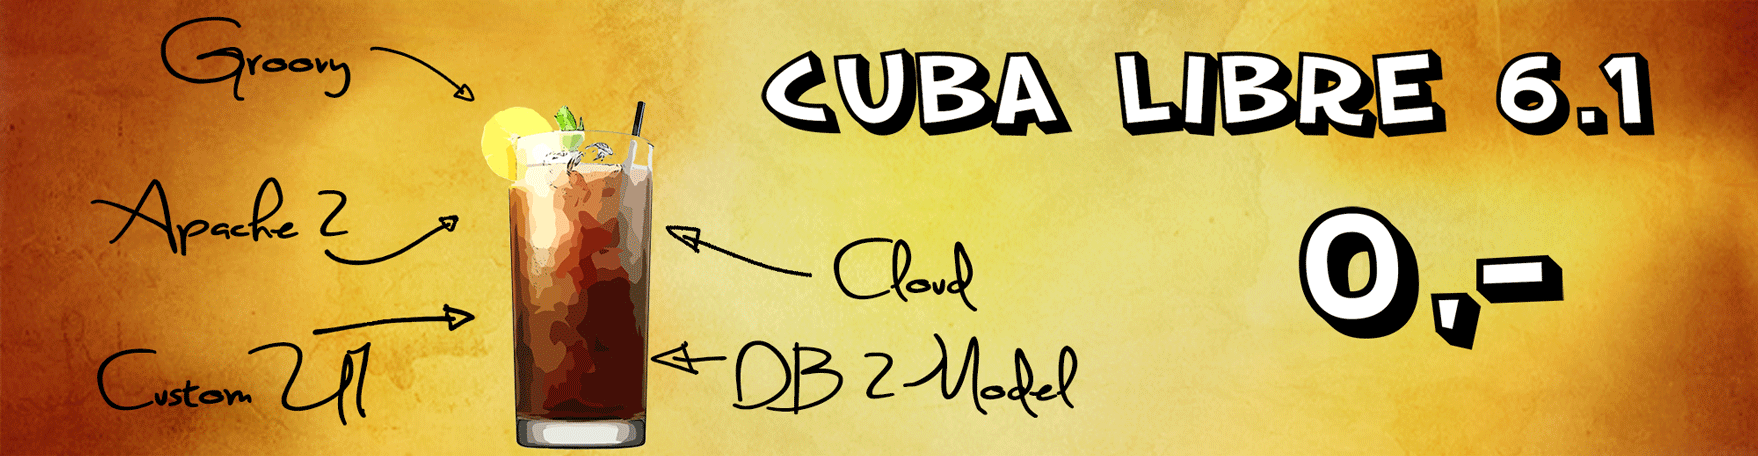 CUBA goes open source with a handful of features